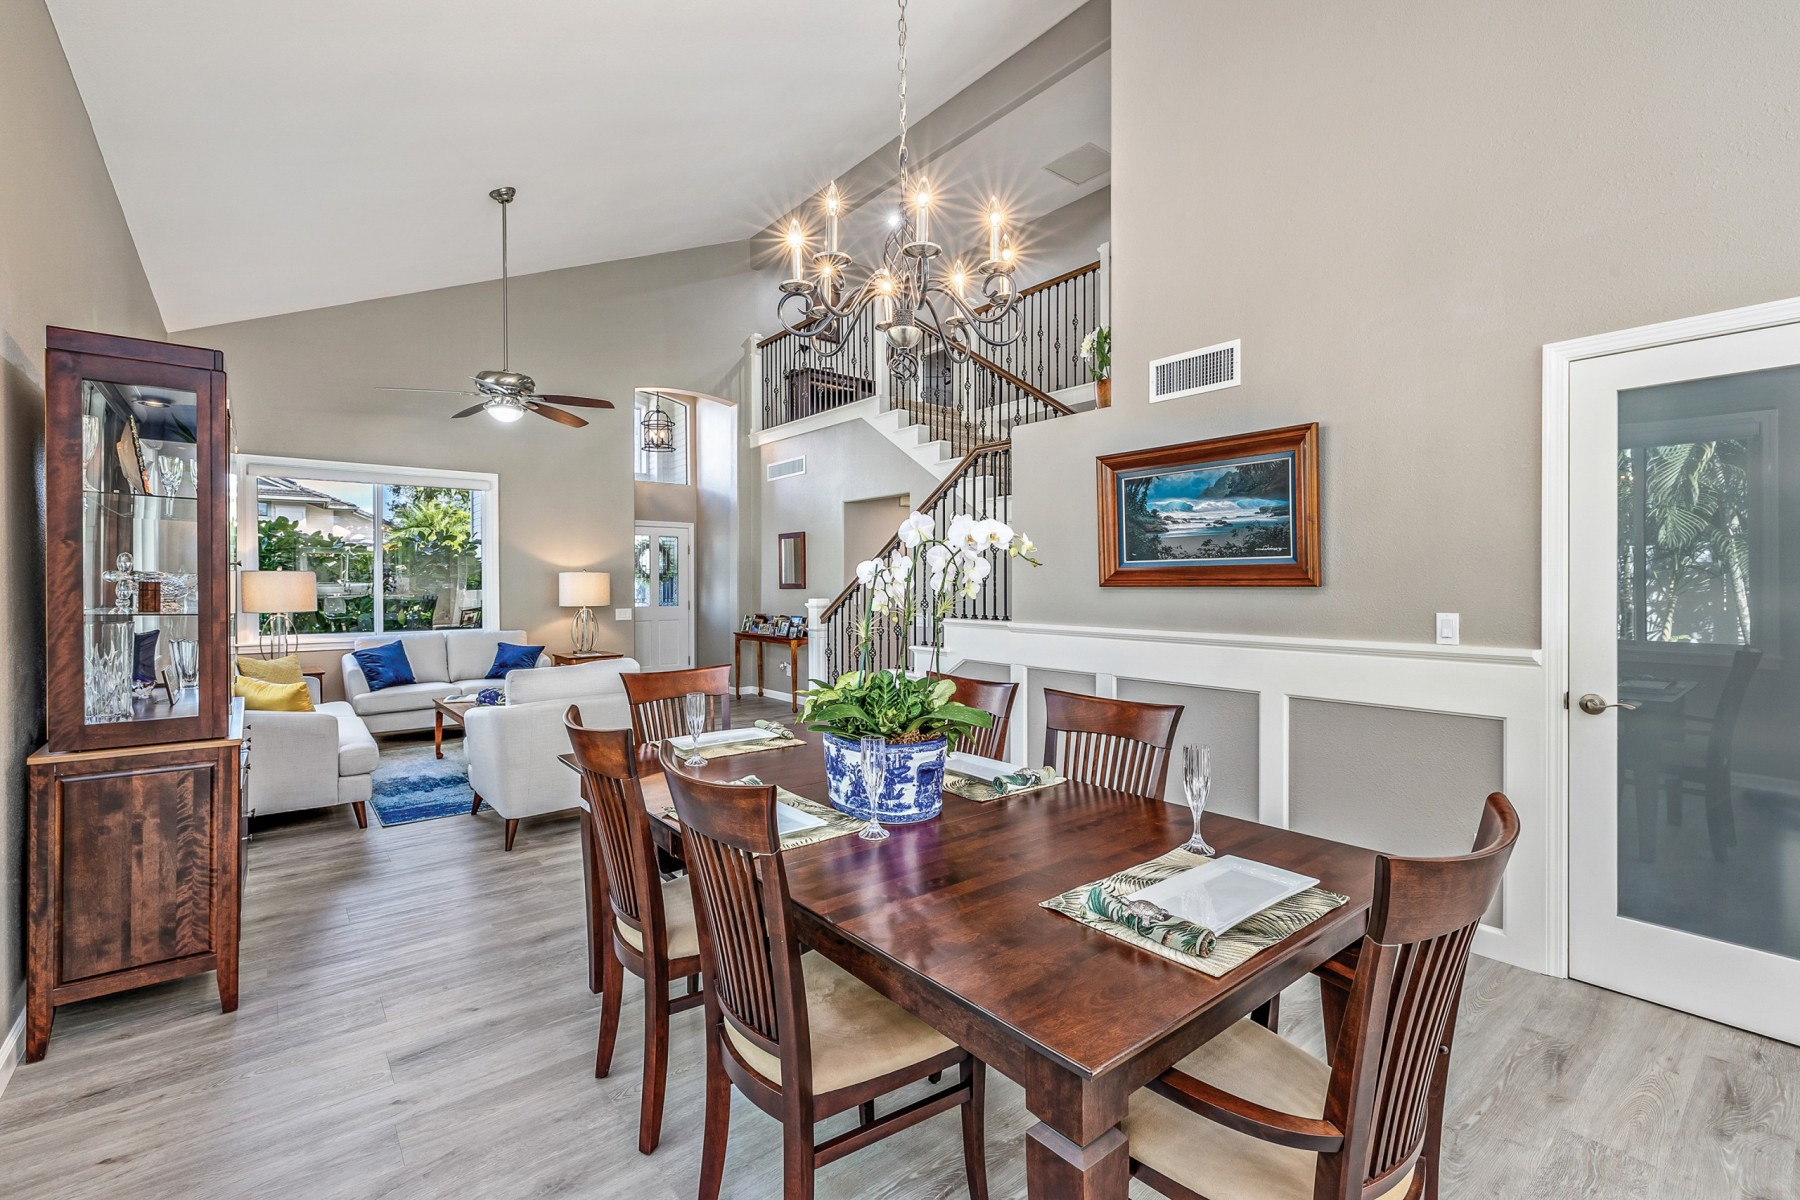 accessible, open kitchen